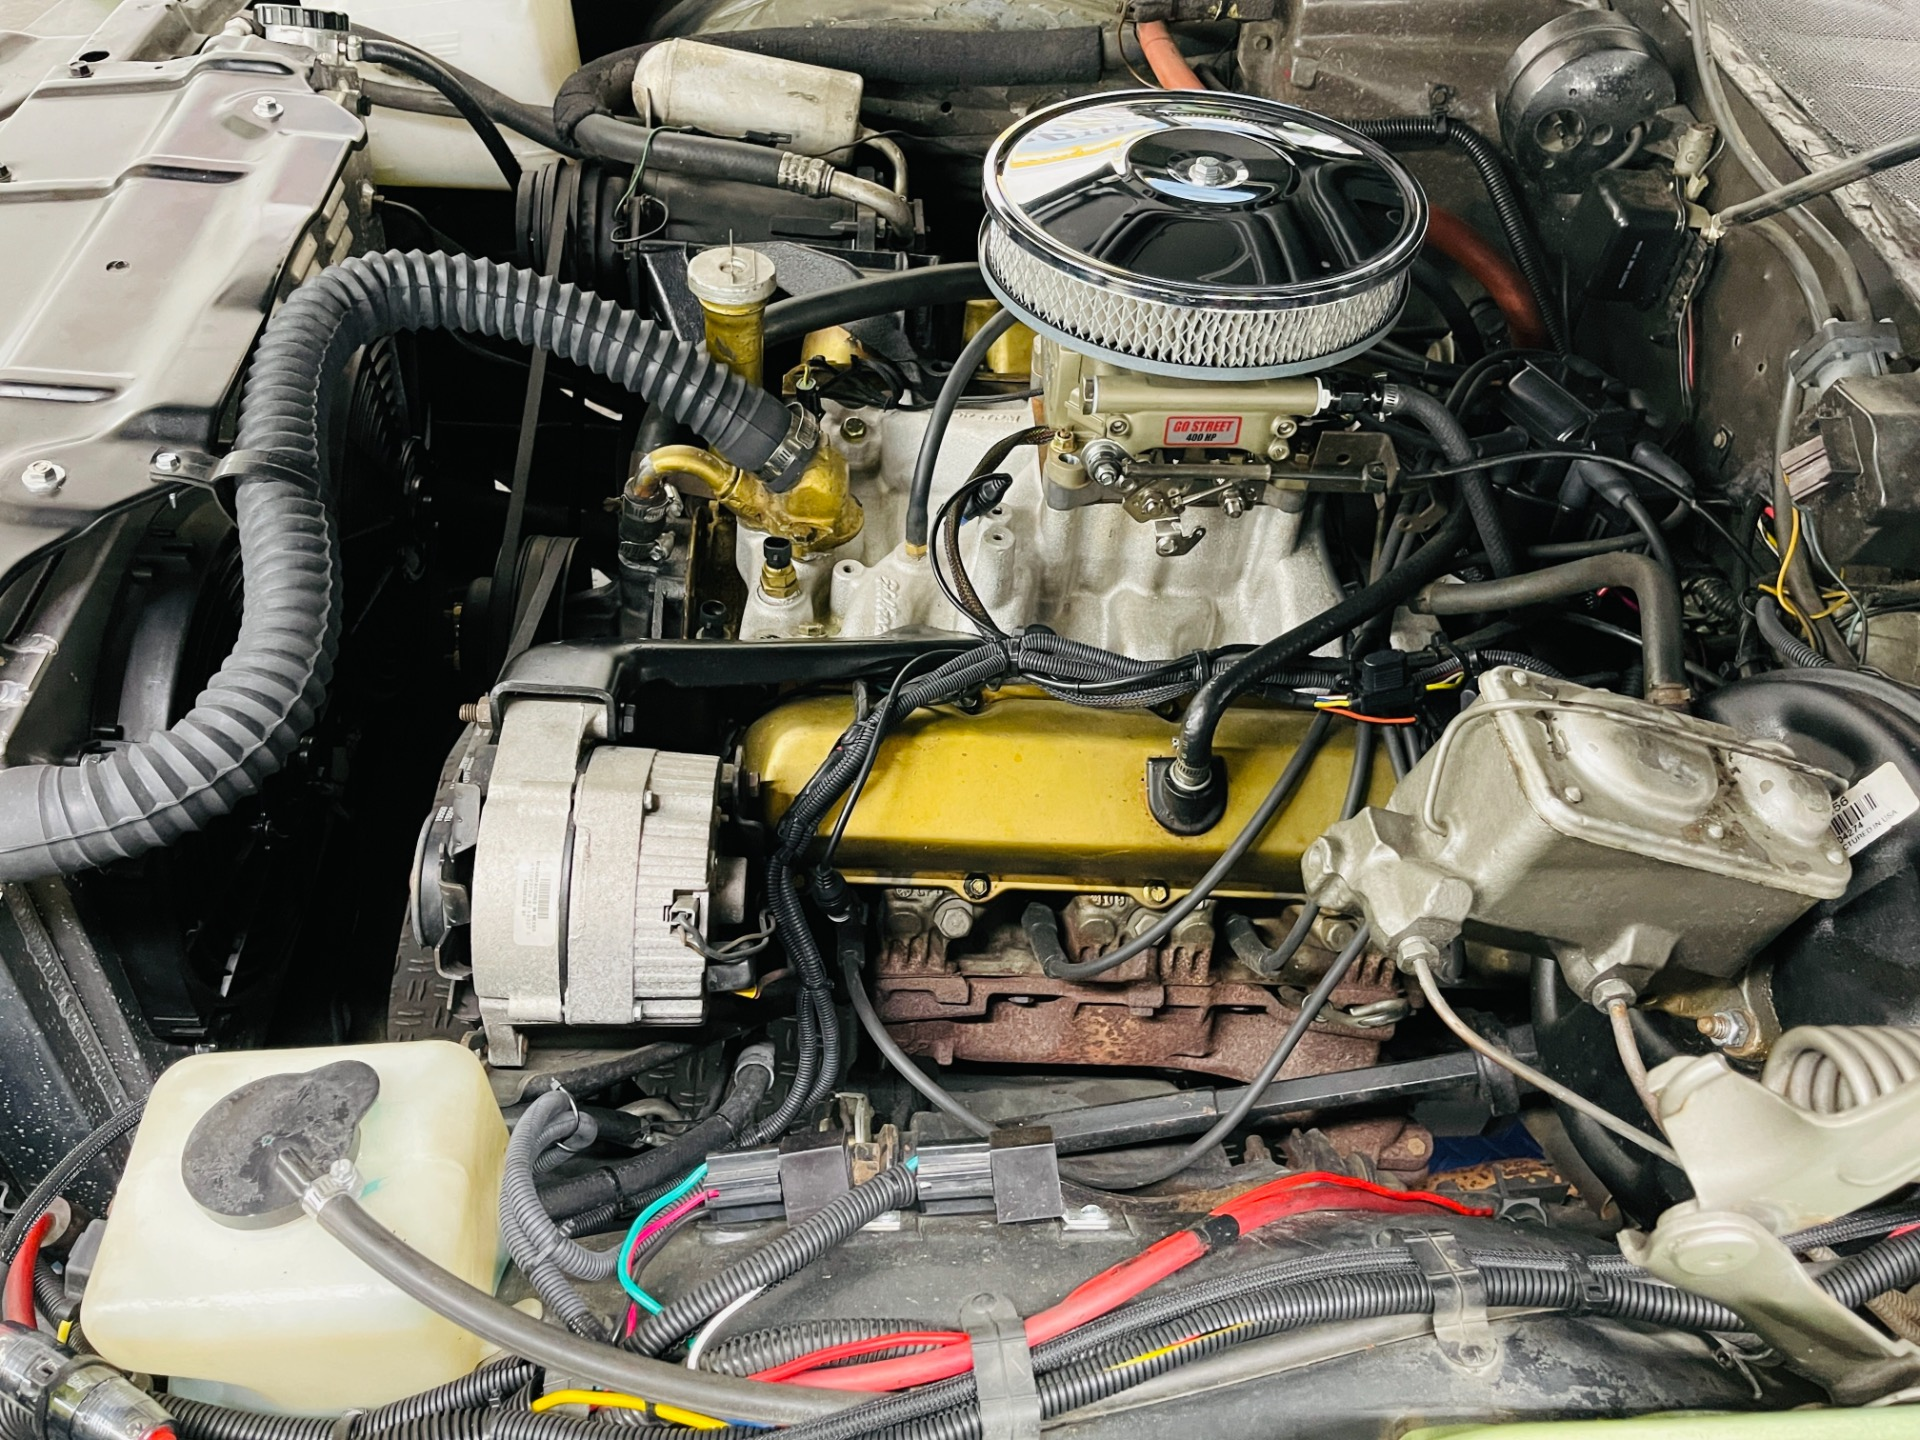 Used 1972 Oldsmobile Cutlass - FUEL INJECTED 350 ENGINE - MODERN UPGRADES - SEE VIDEO   Mundelein, IL